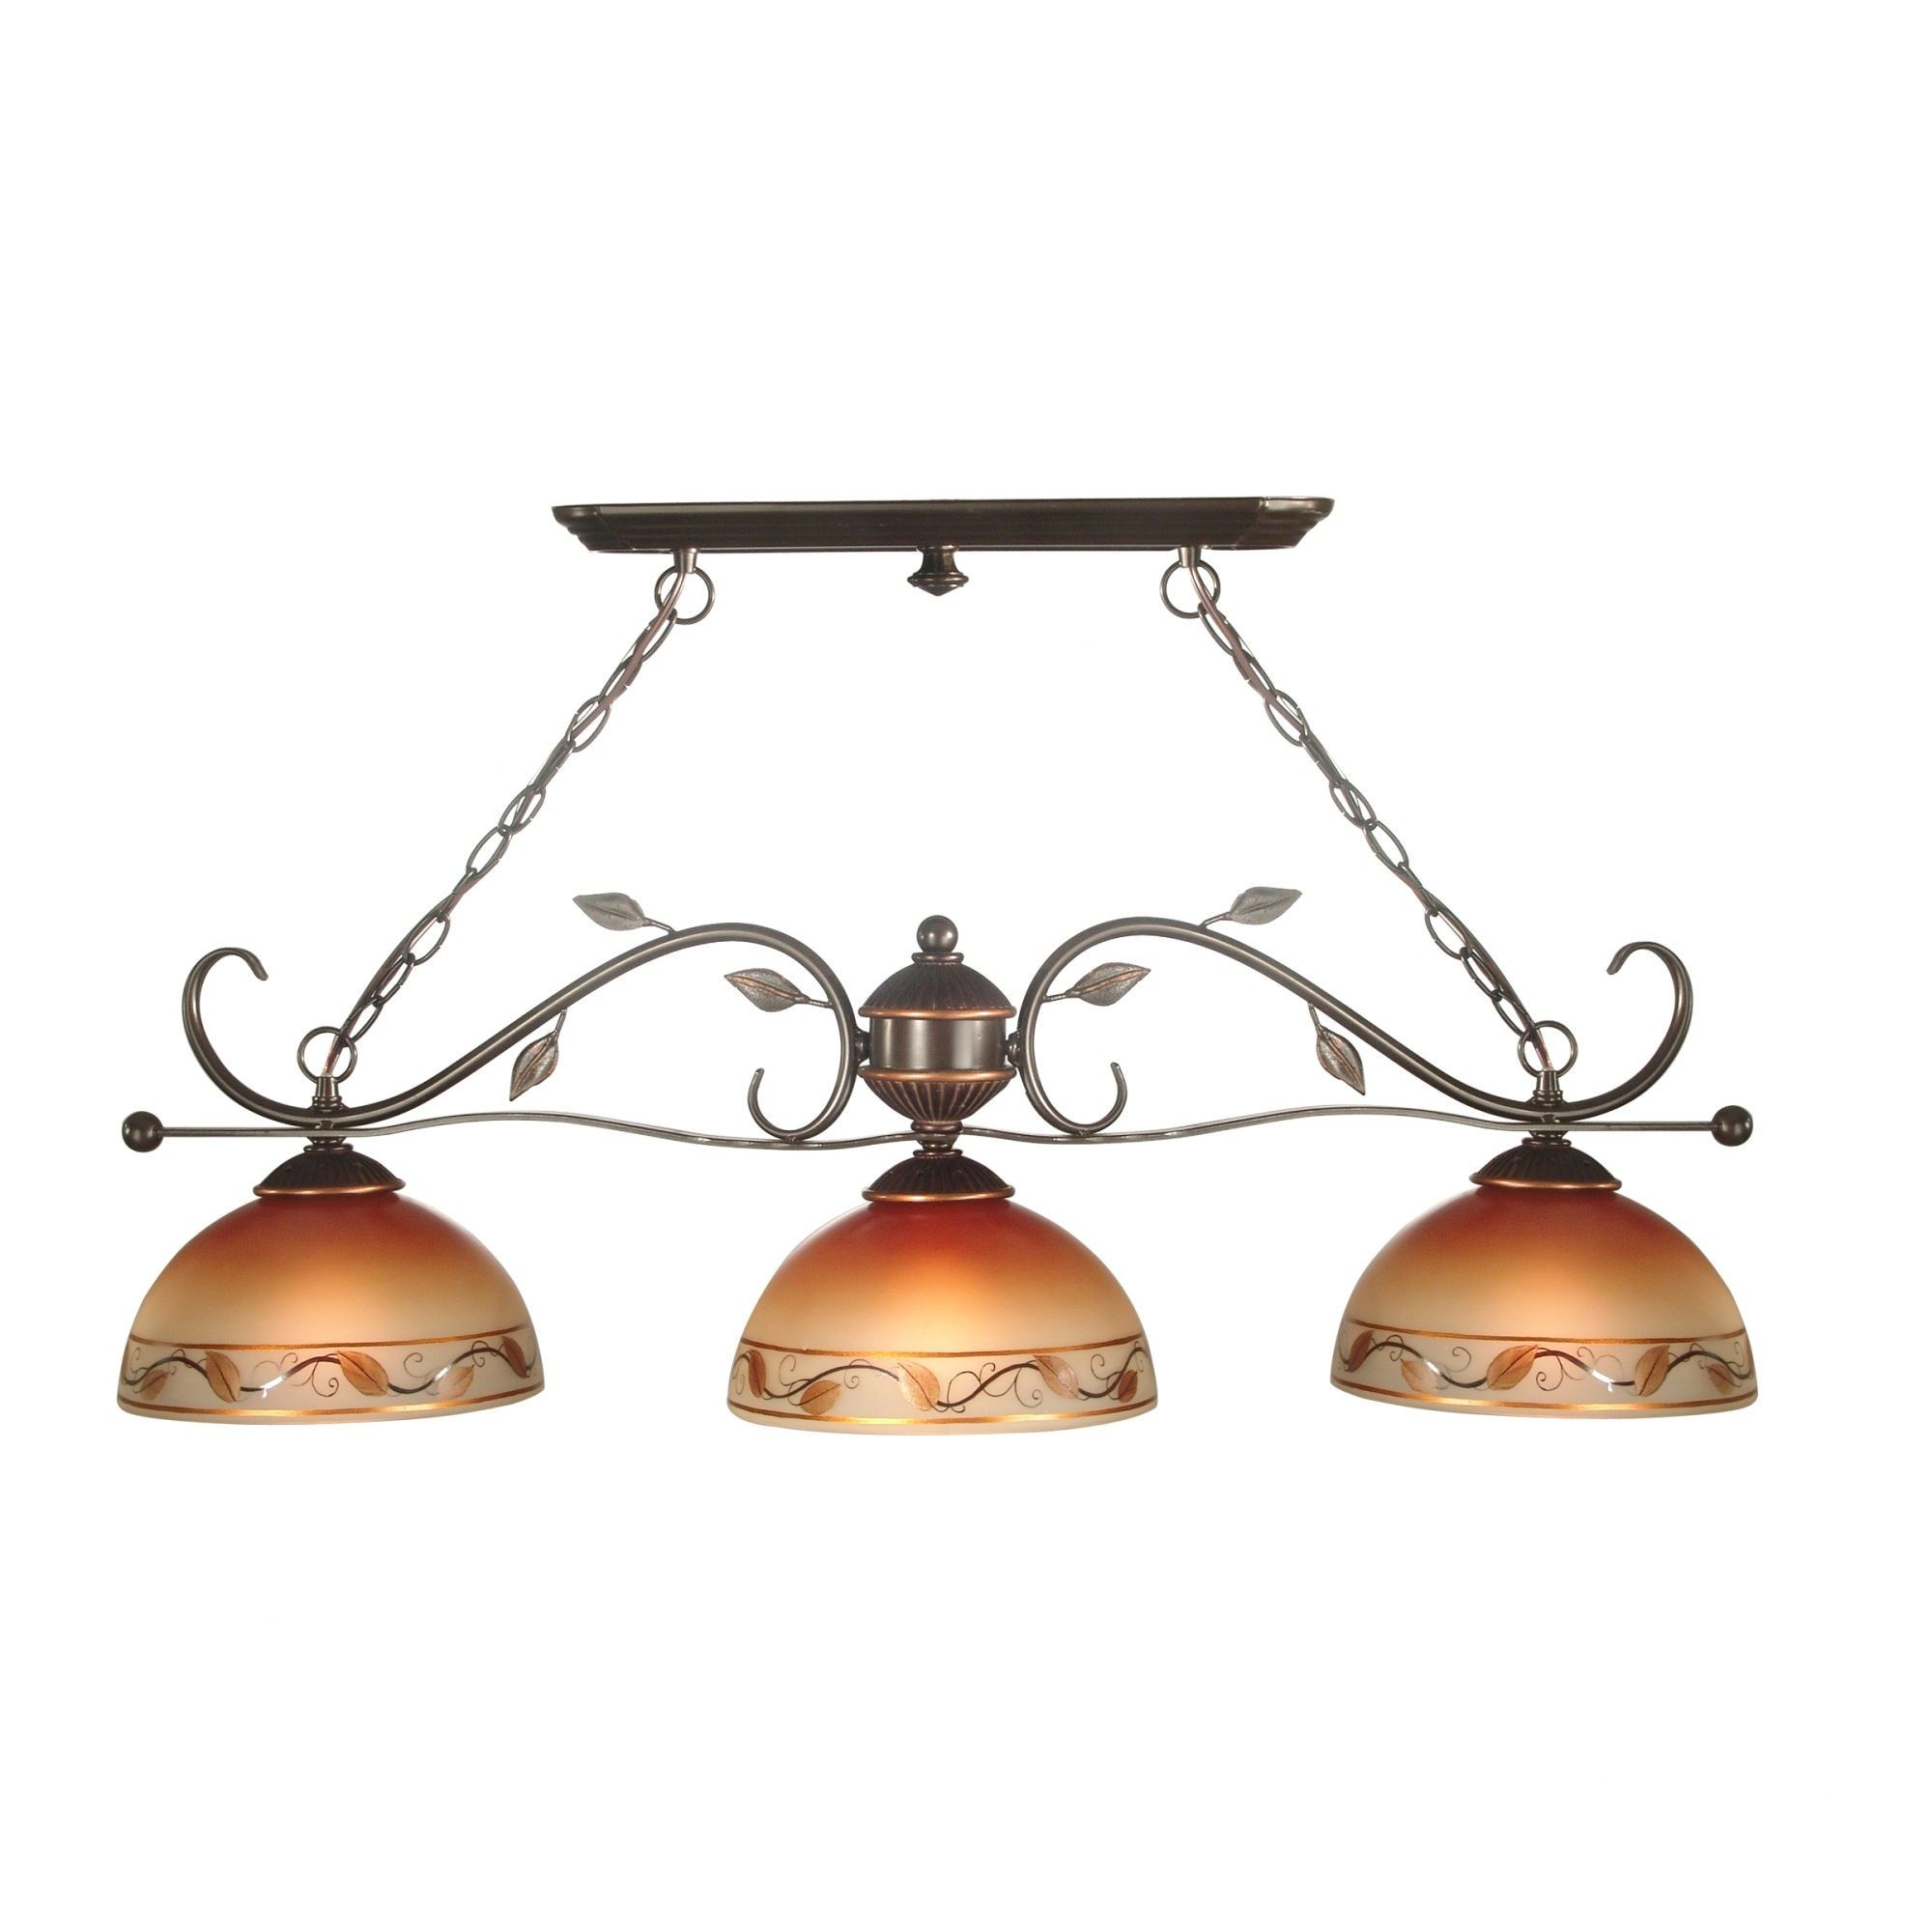 Tiffany Kitchen Ceiling Lights Httpsinhvienthienannet - Tiffany kitchen ceiling lights